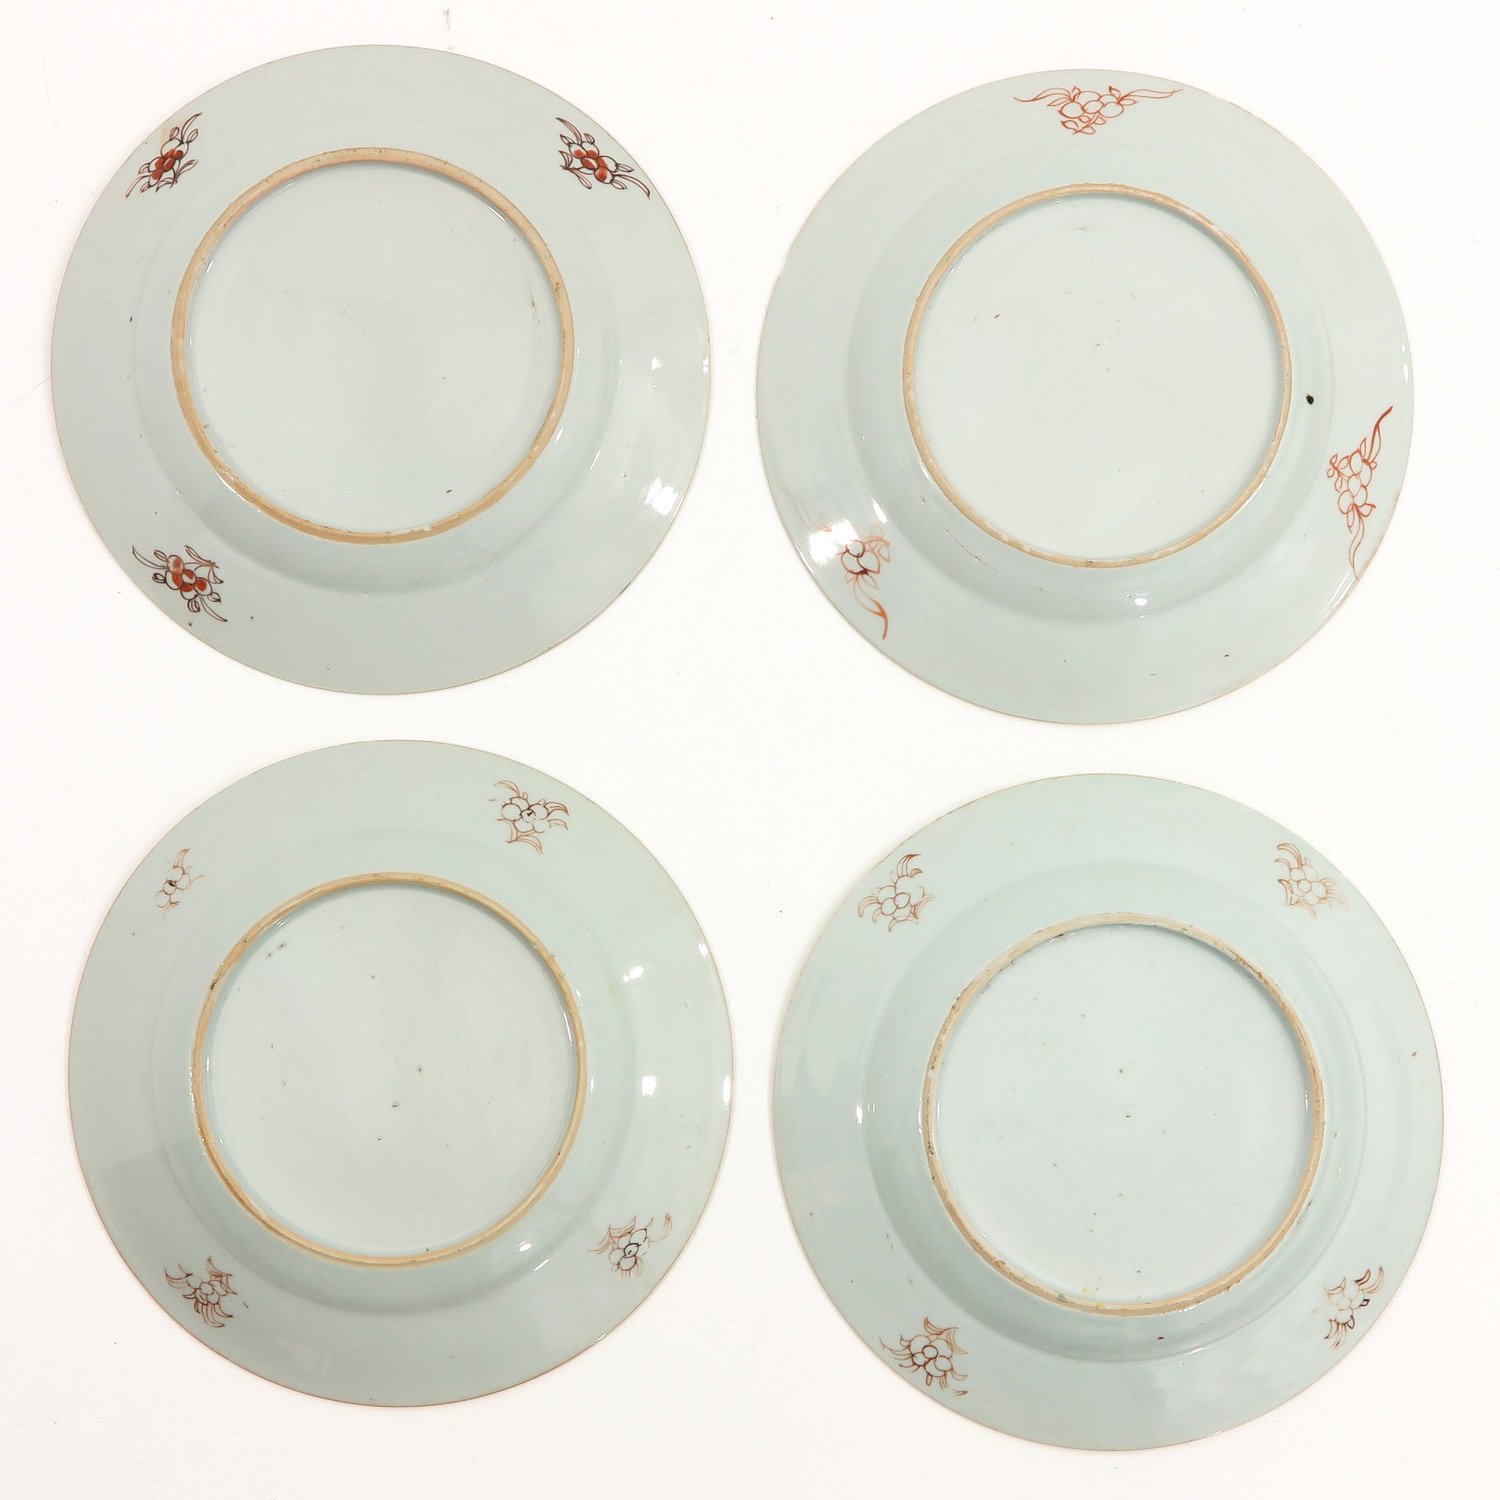 A Series of 4 Famille Rose Plates - Image 2 of 9